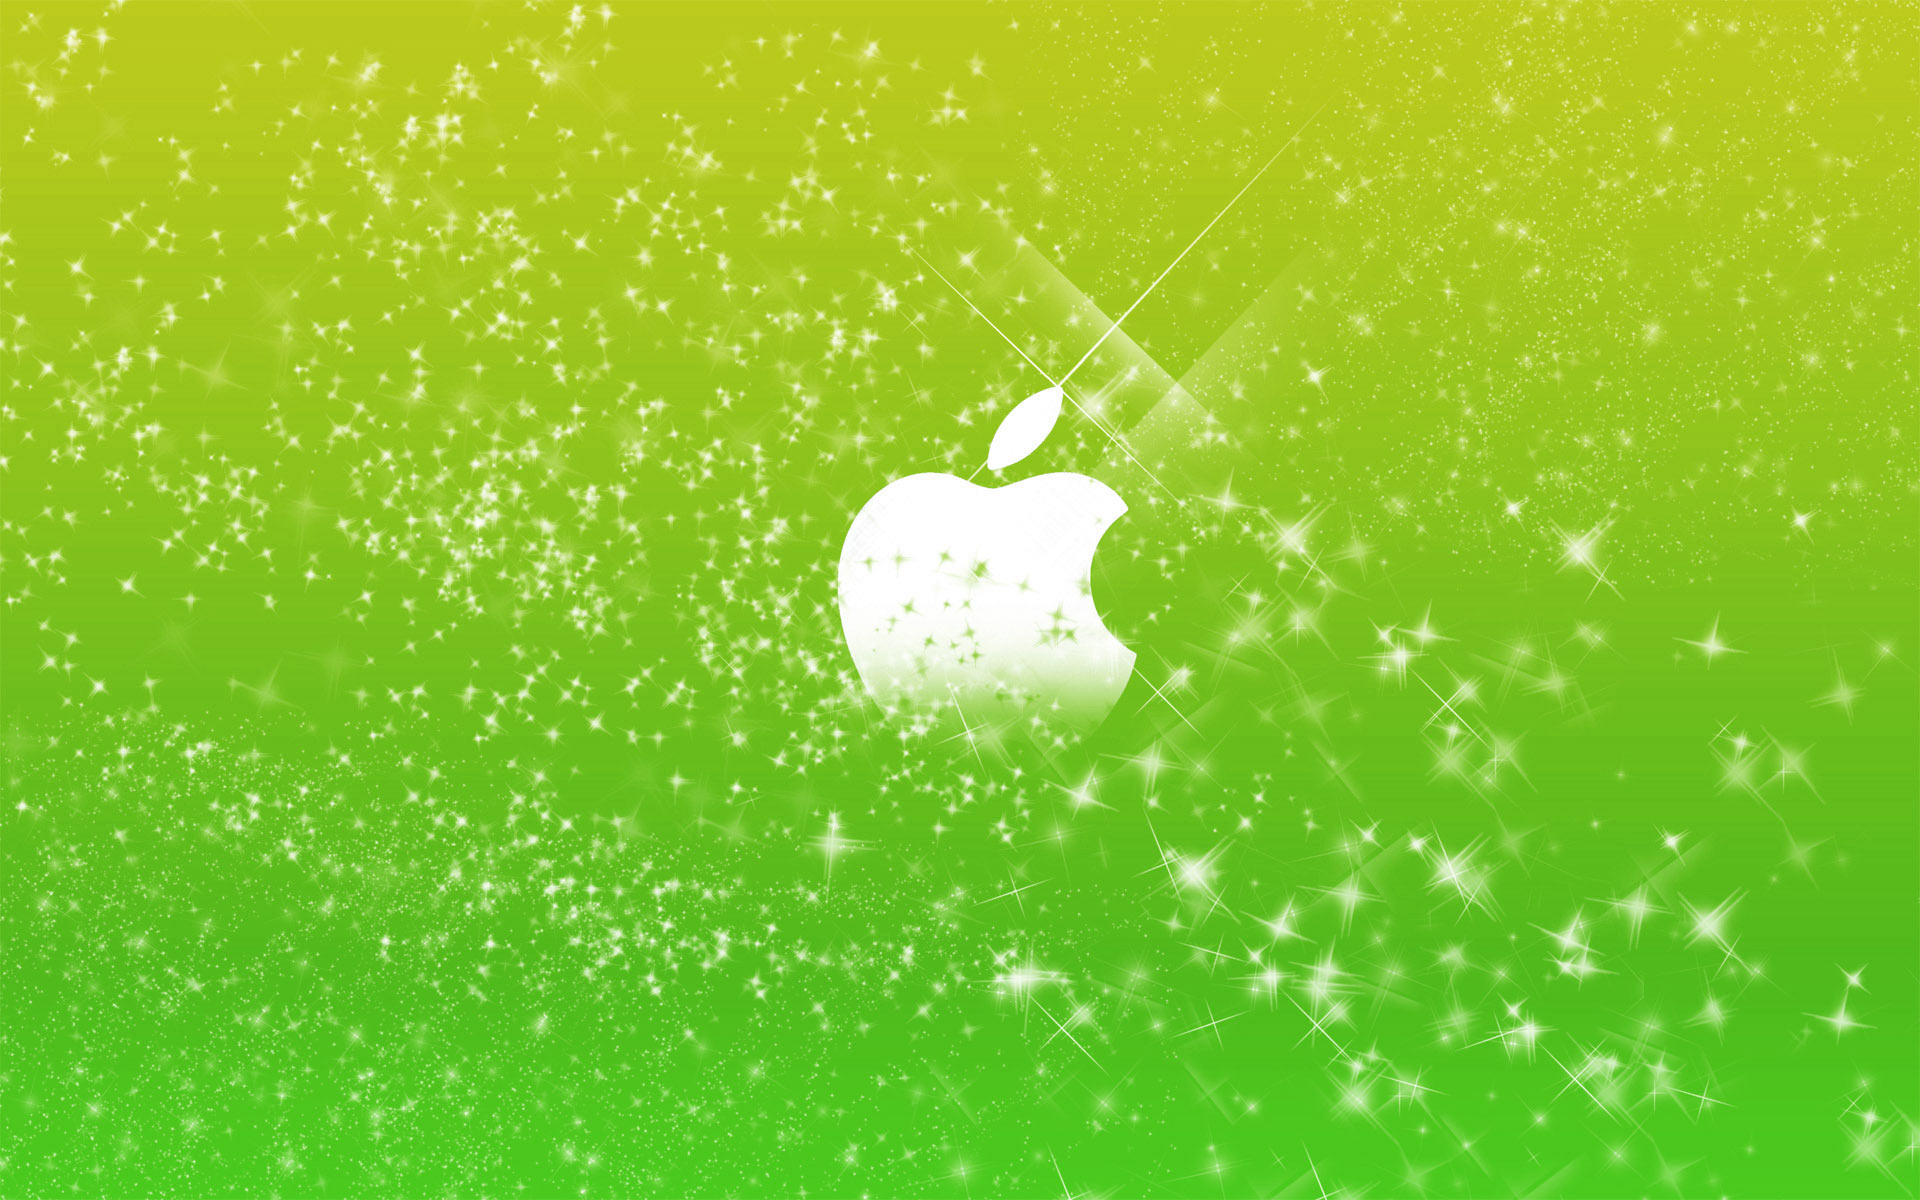 green backgrounds for mac wallpaper high quality